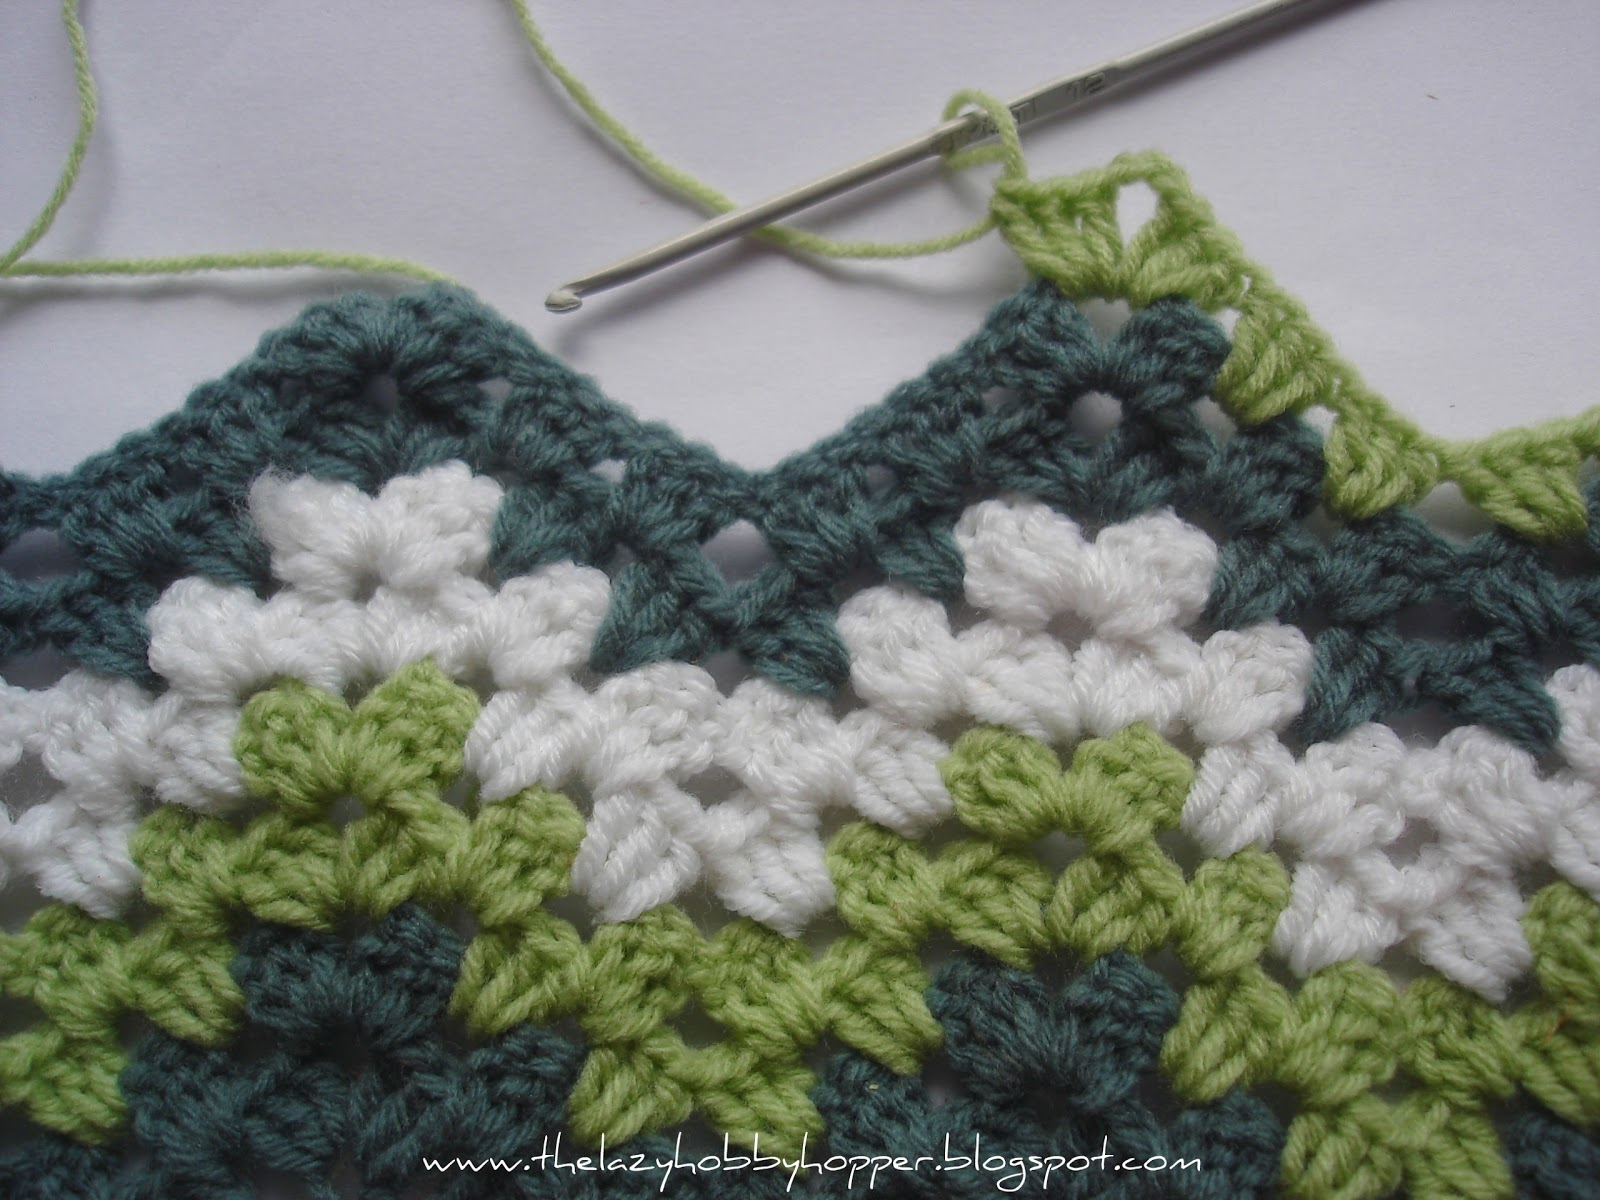 How Do I Crochet : The Lazy Hobbyhopper: How to crochet granny ripple